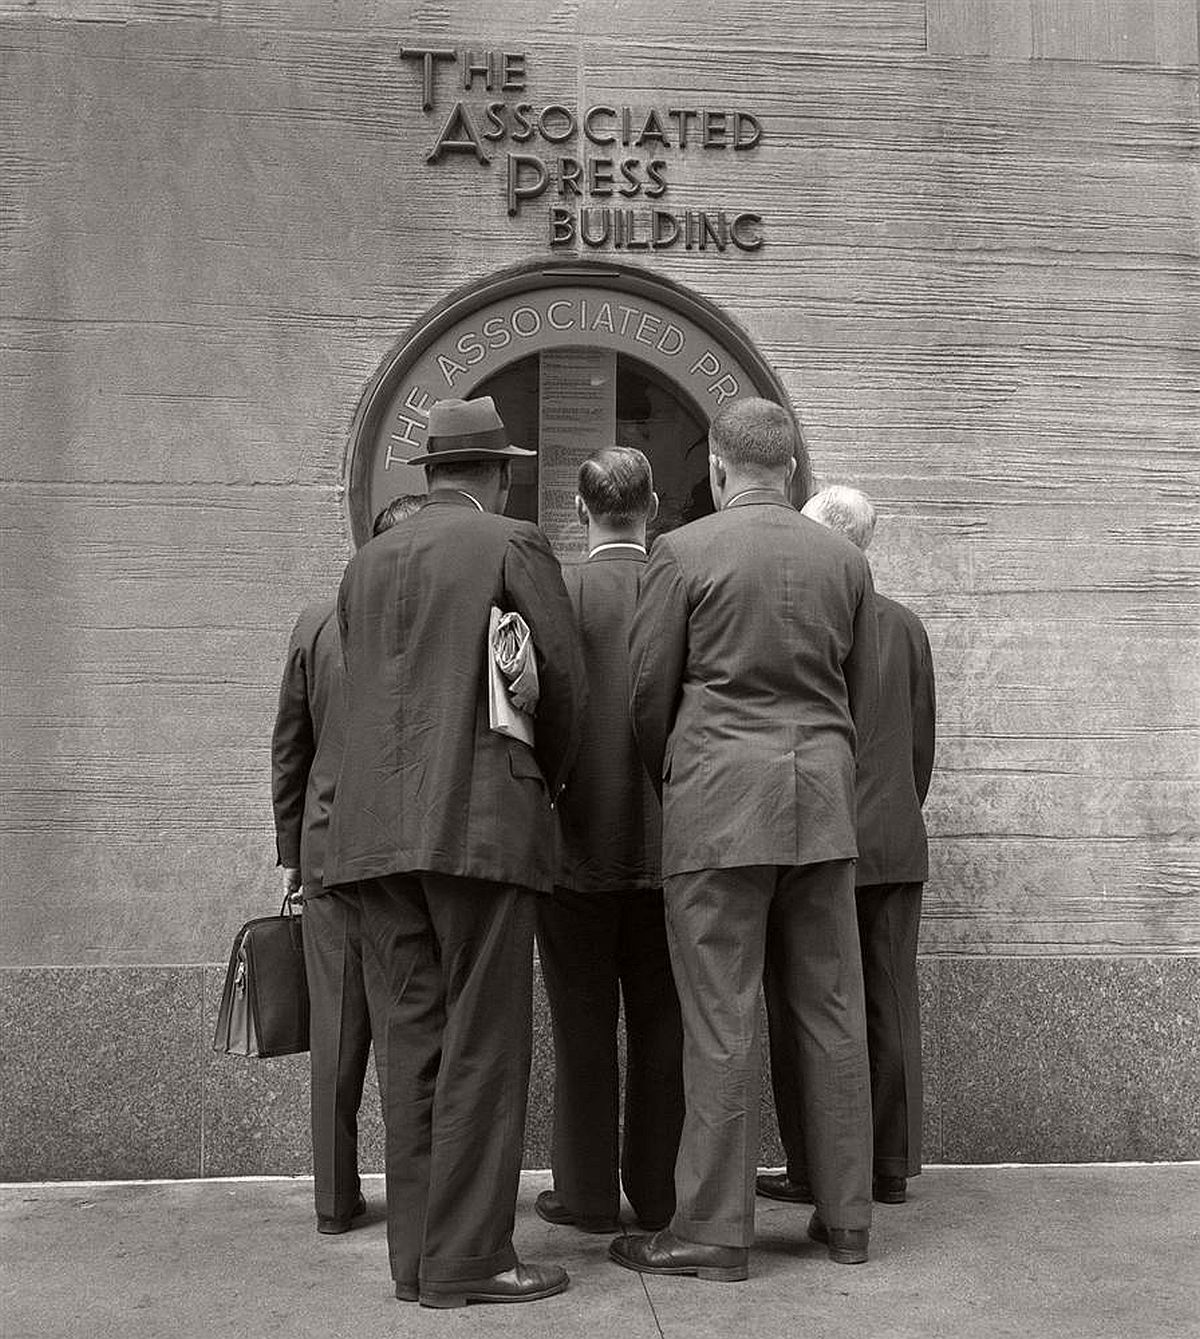 A group of businessmen huddle together at the window of the Associated Press office at Rockefeller Center to read the latest news, 1955.